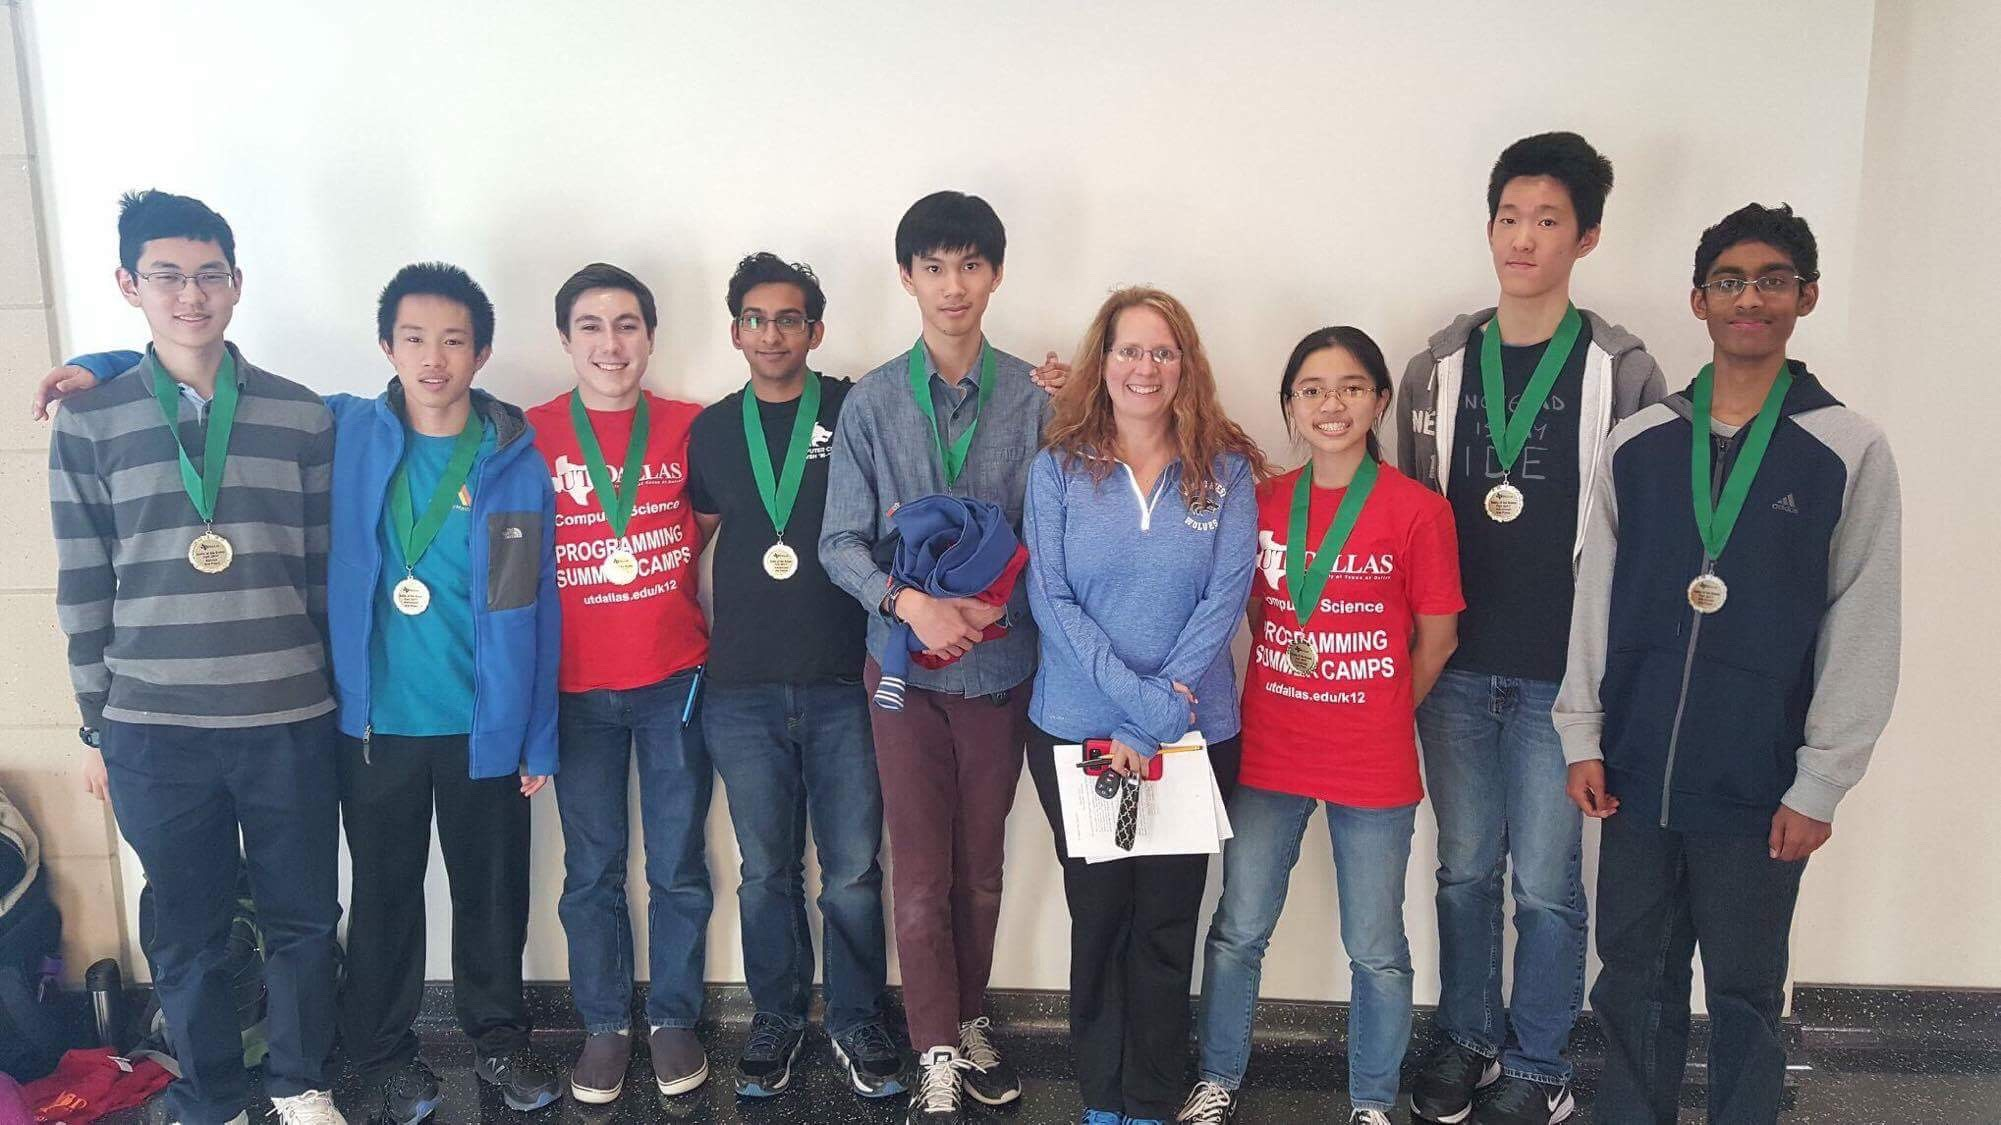 Plano West Team Members Battle of the Brains Contest